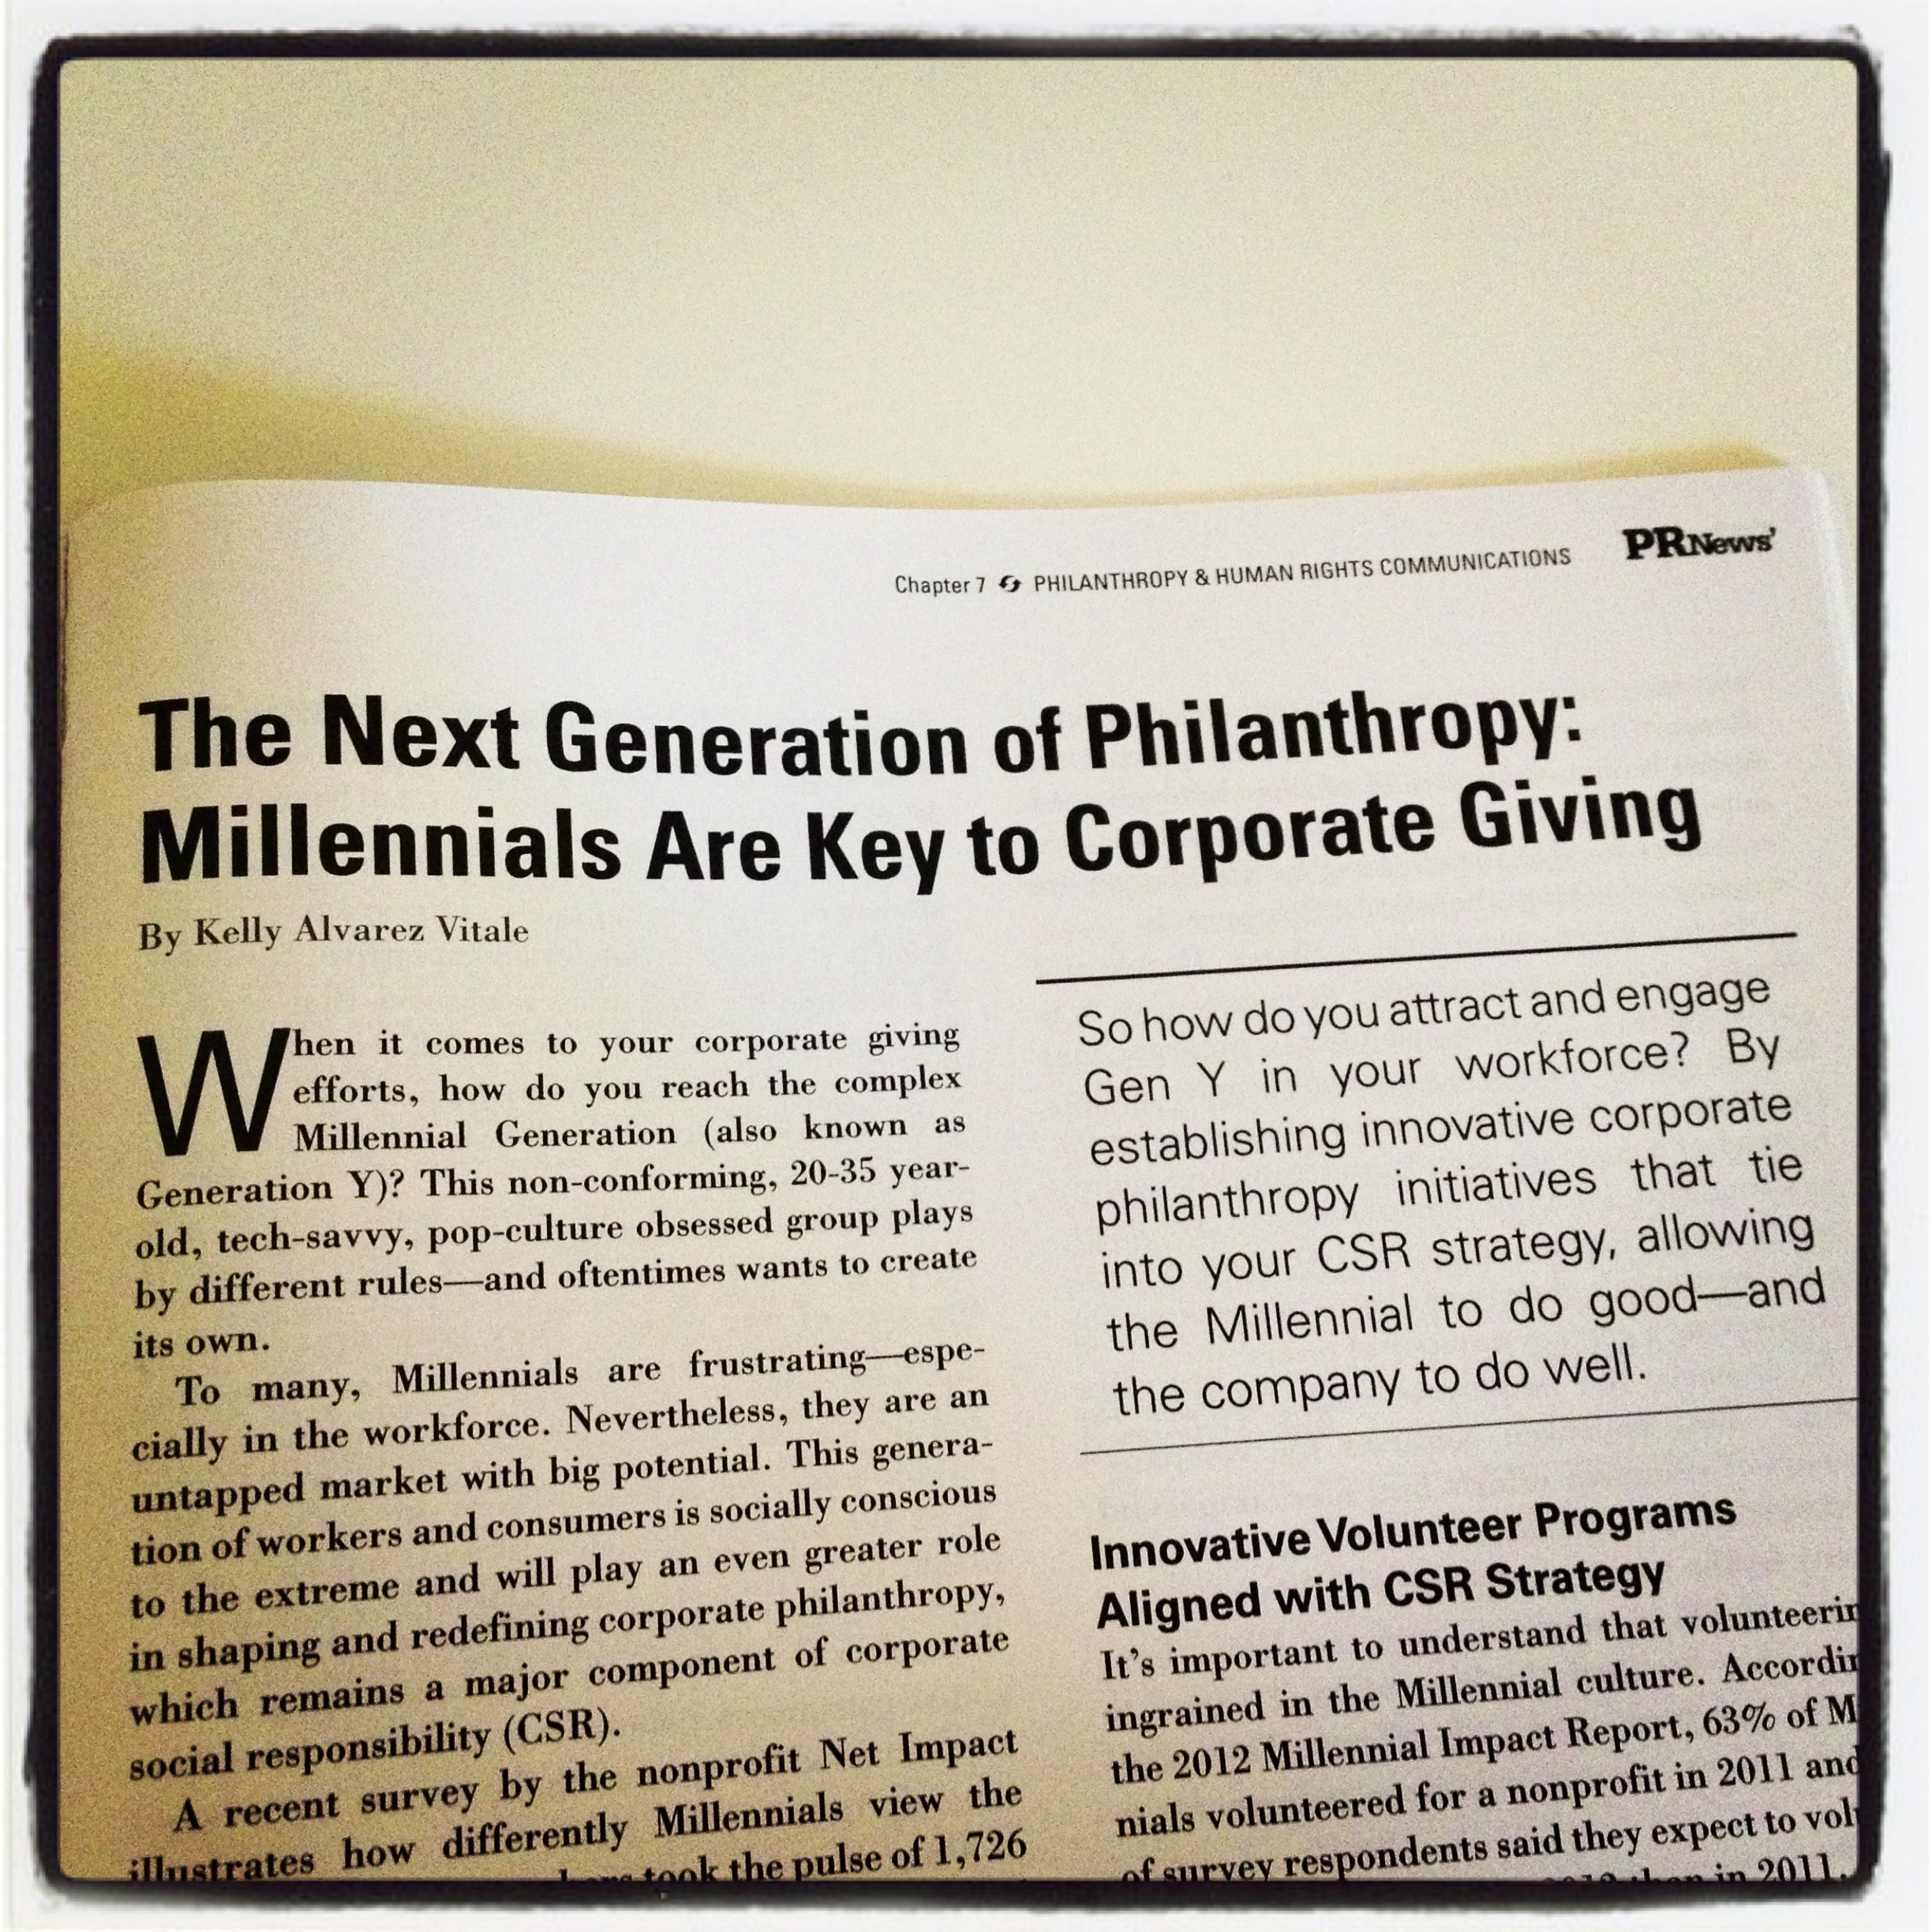 the next generation of philanthropy engaging millennials in your the complex millennial also know as generation y the nonconforming 20 35 year old tech savvy pop culture obsessed generation they play by different